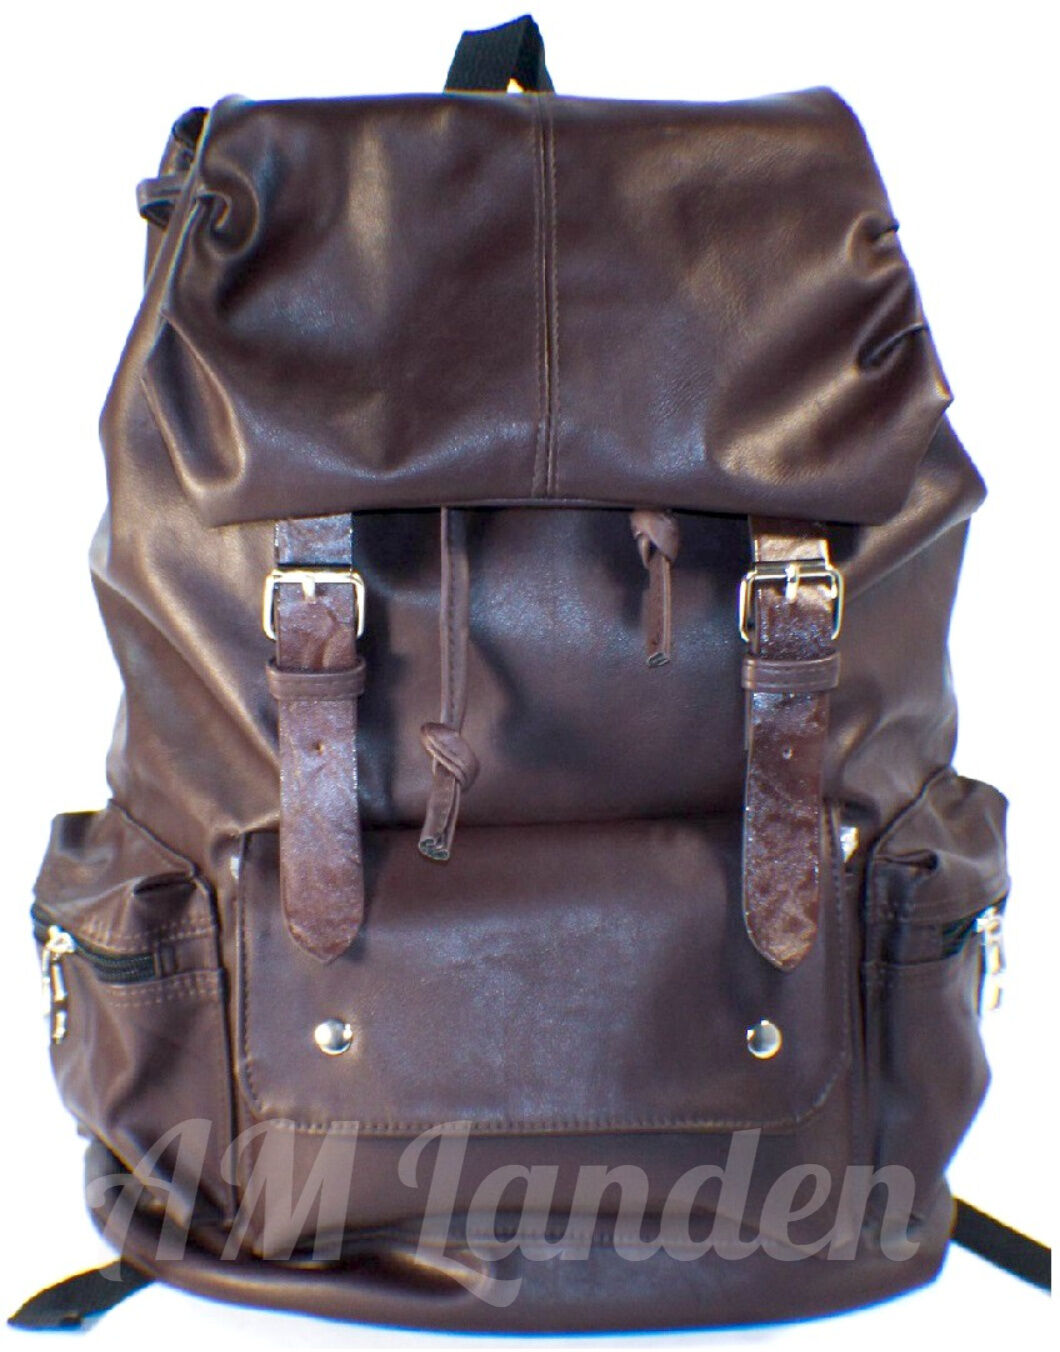 AM Landen Super Cute PU Backpacks Available in 4 Colors Large Size